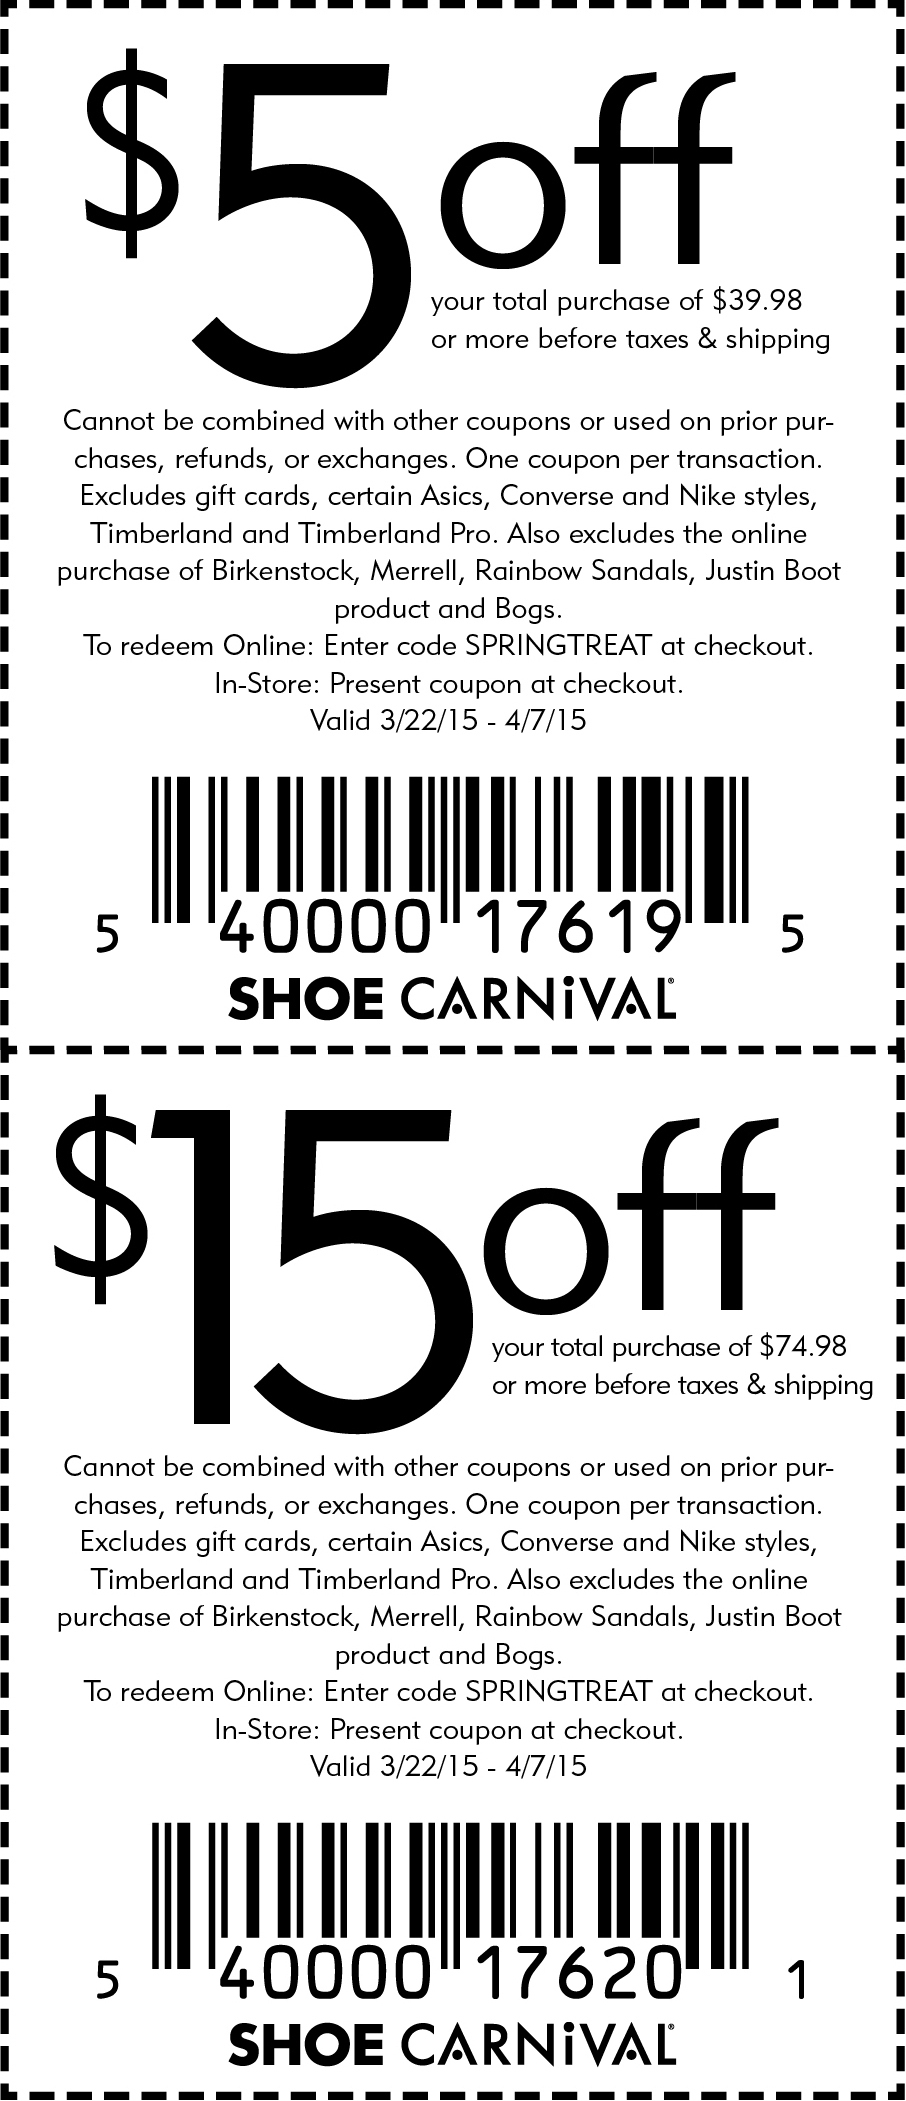 New Dsw Coupons | Wedding Inspirations - Free Printable Coupons For Dsw Shoes